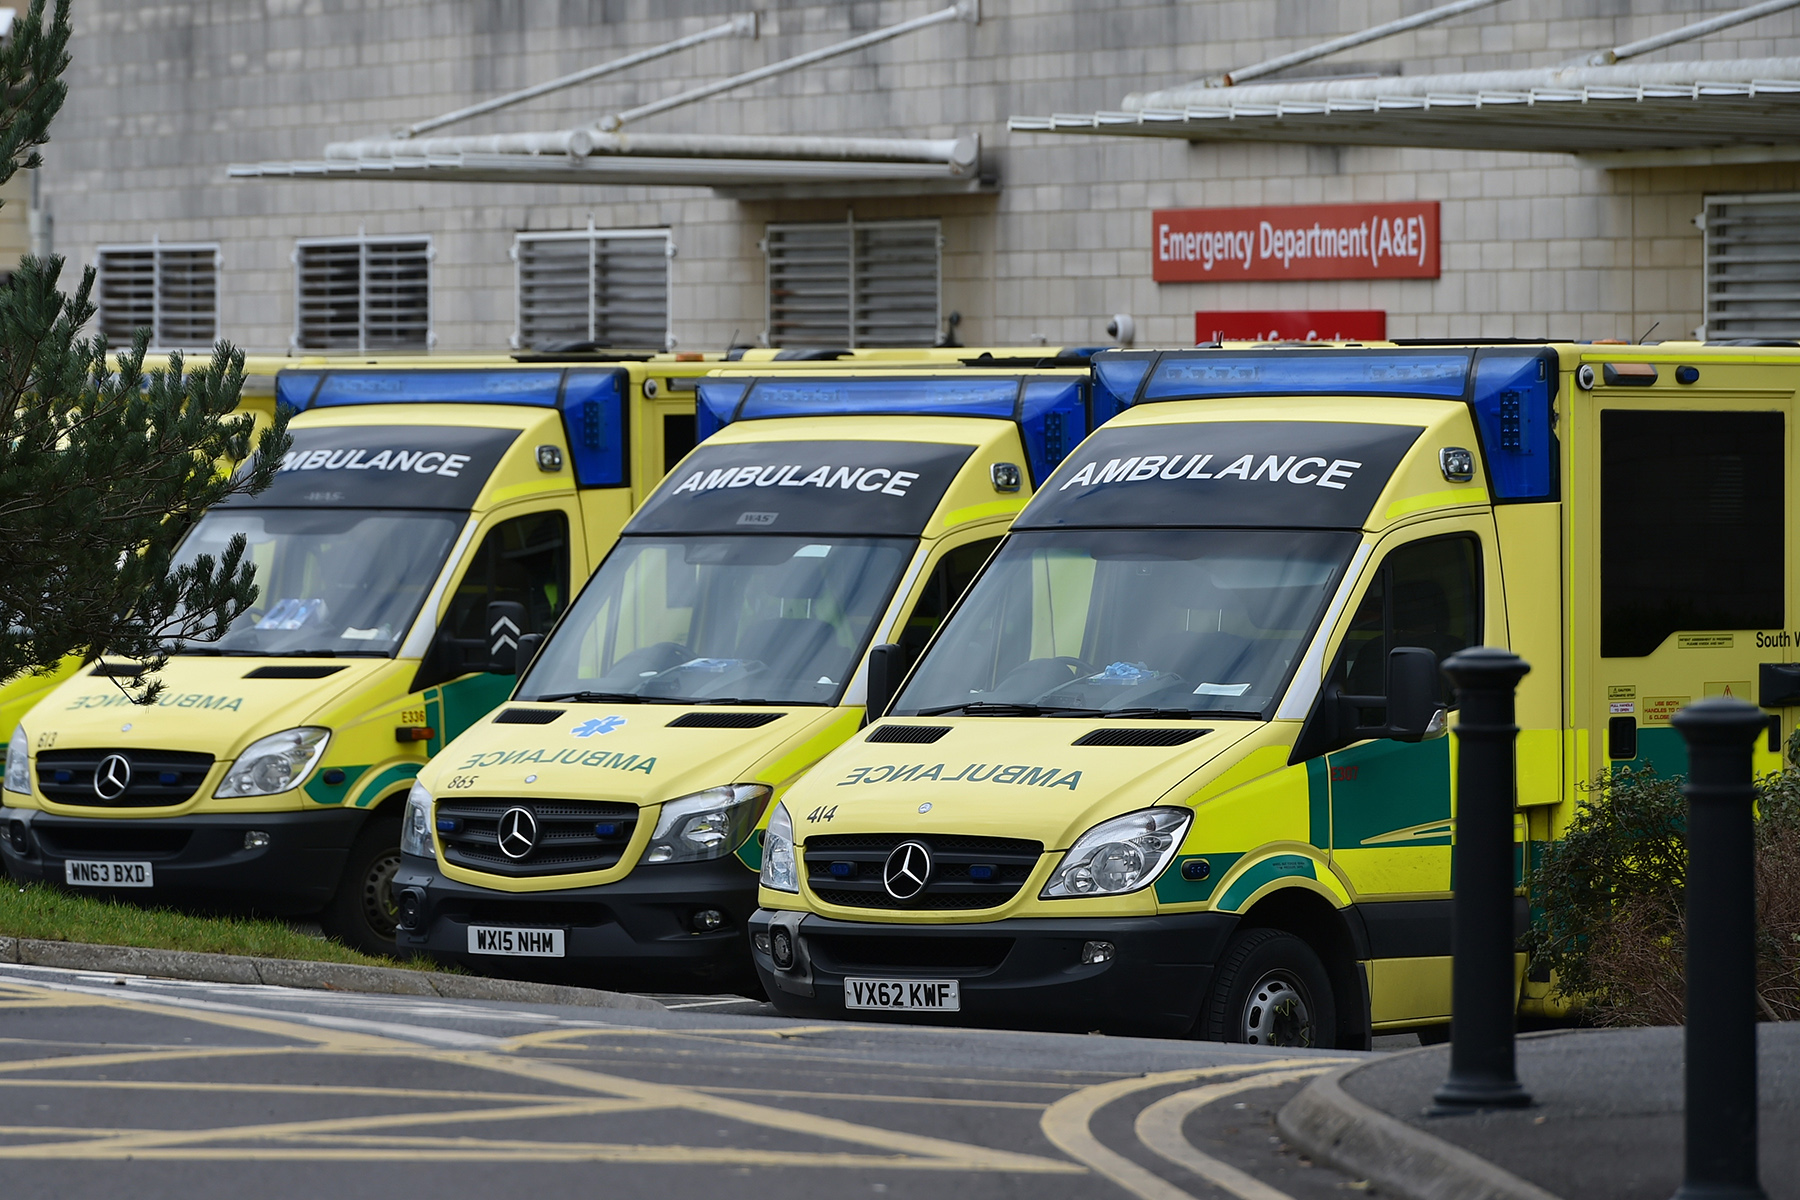 Ambulances in front of a hospital in Bath, England